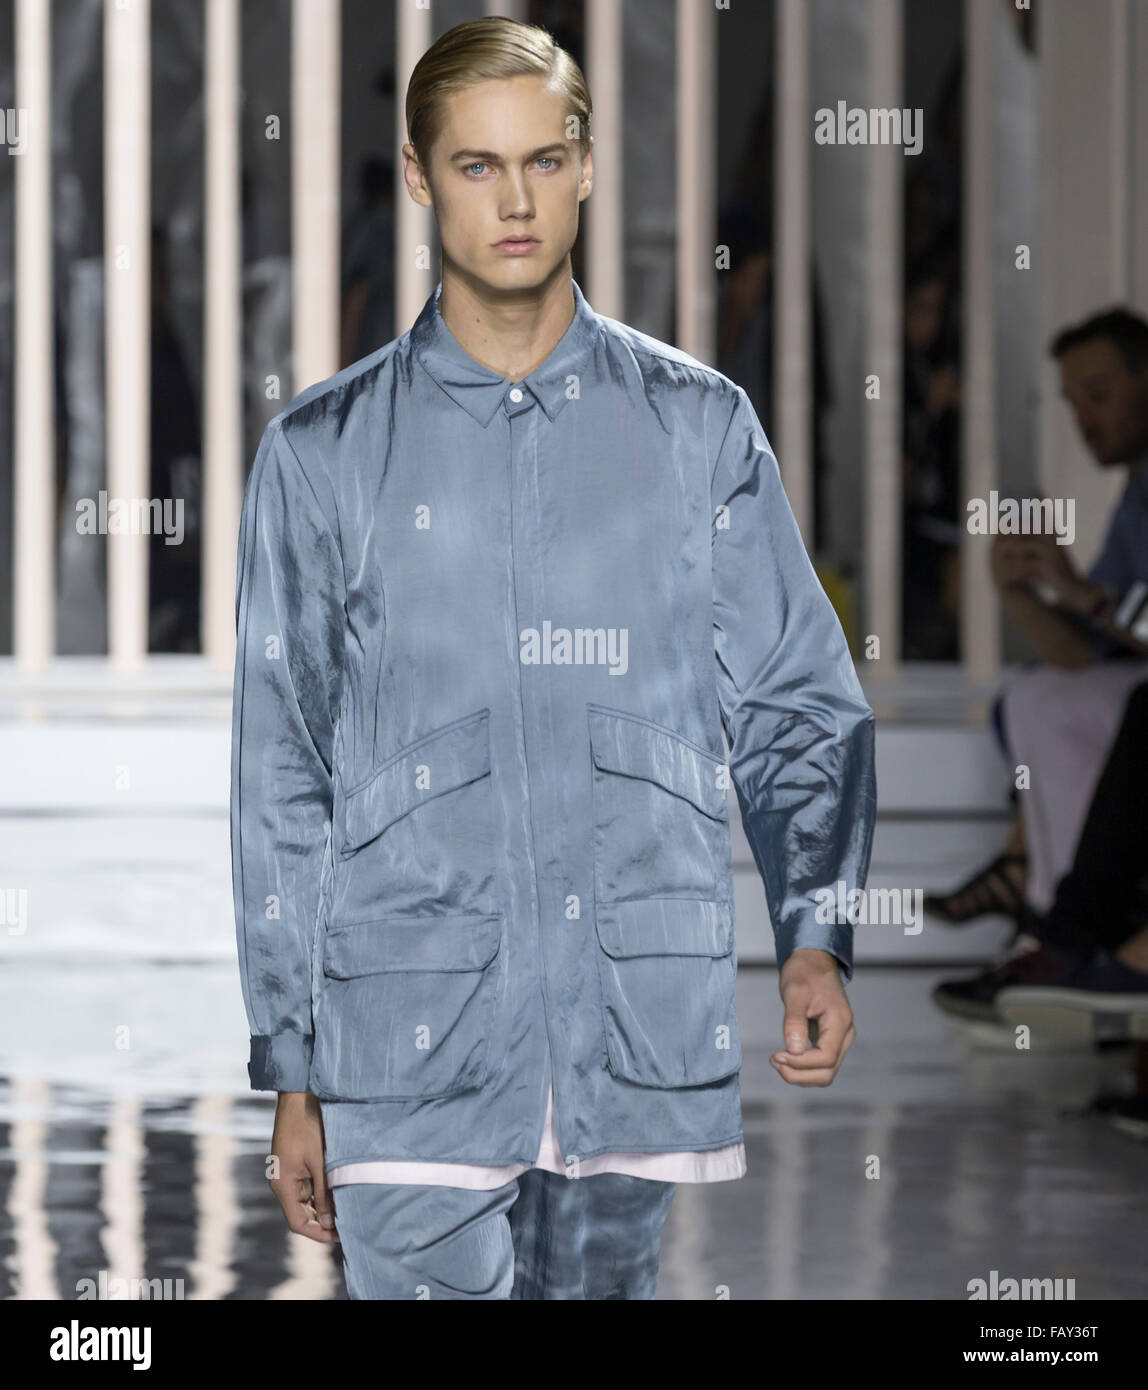 NEW YORK, NY - JULY 14, 2015: Neels Visser walks the runway during the Rochambeau show at New York Fashion Week - Stock Image